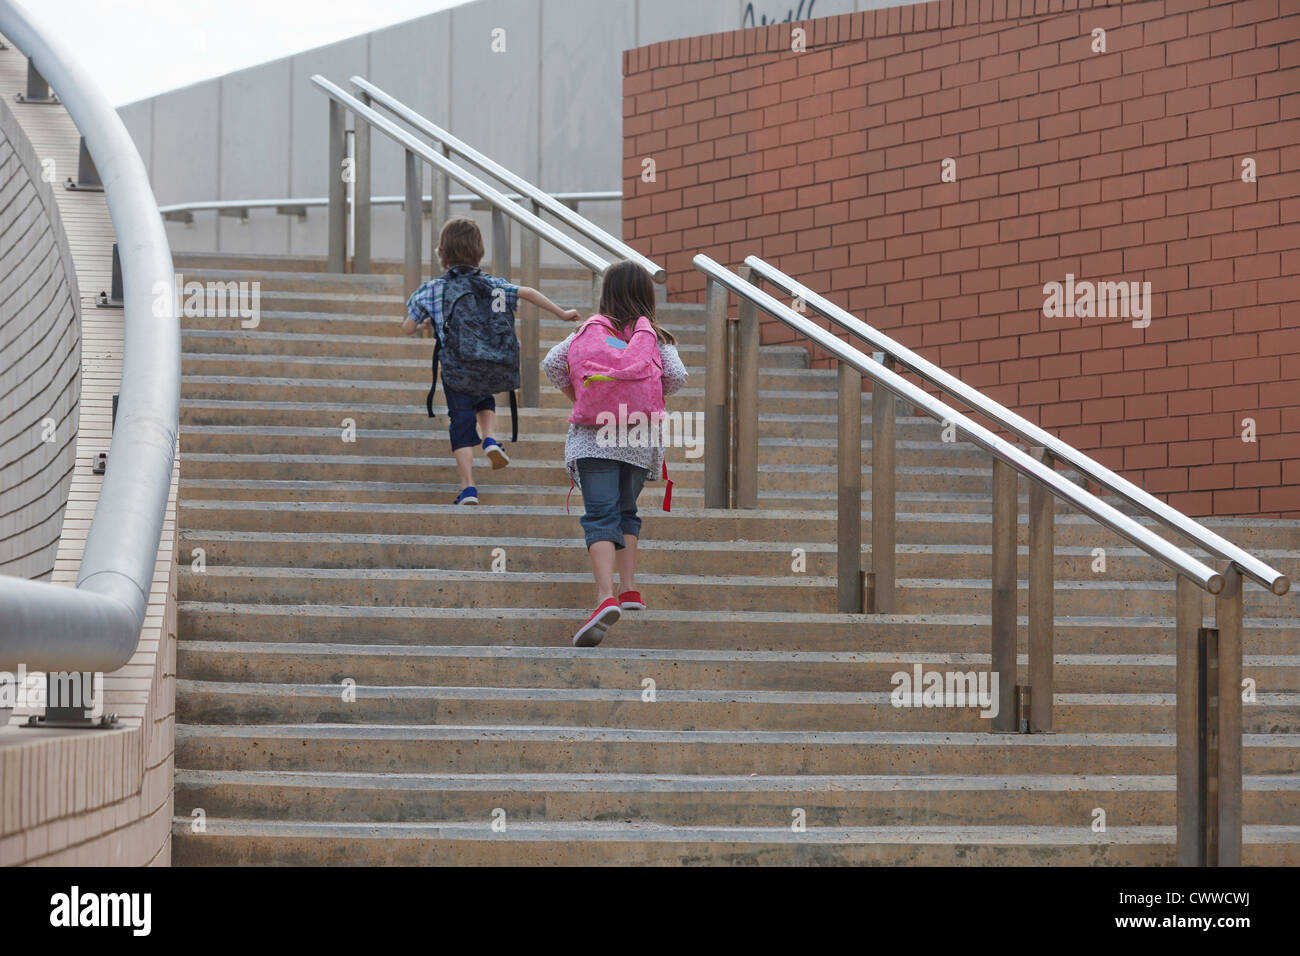 Children climbing stairs outdoors - Stock Image